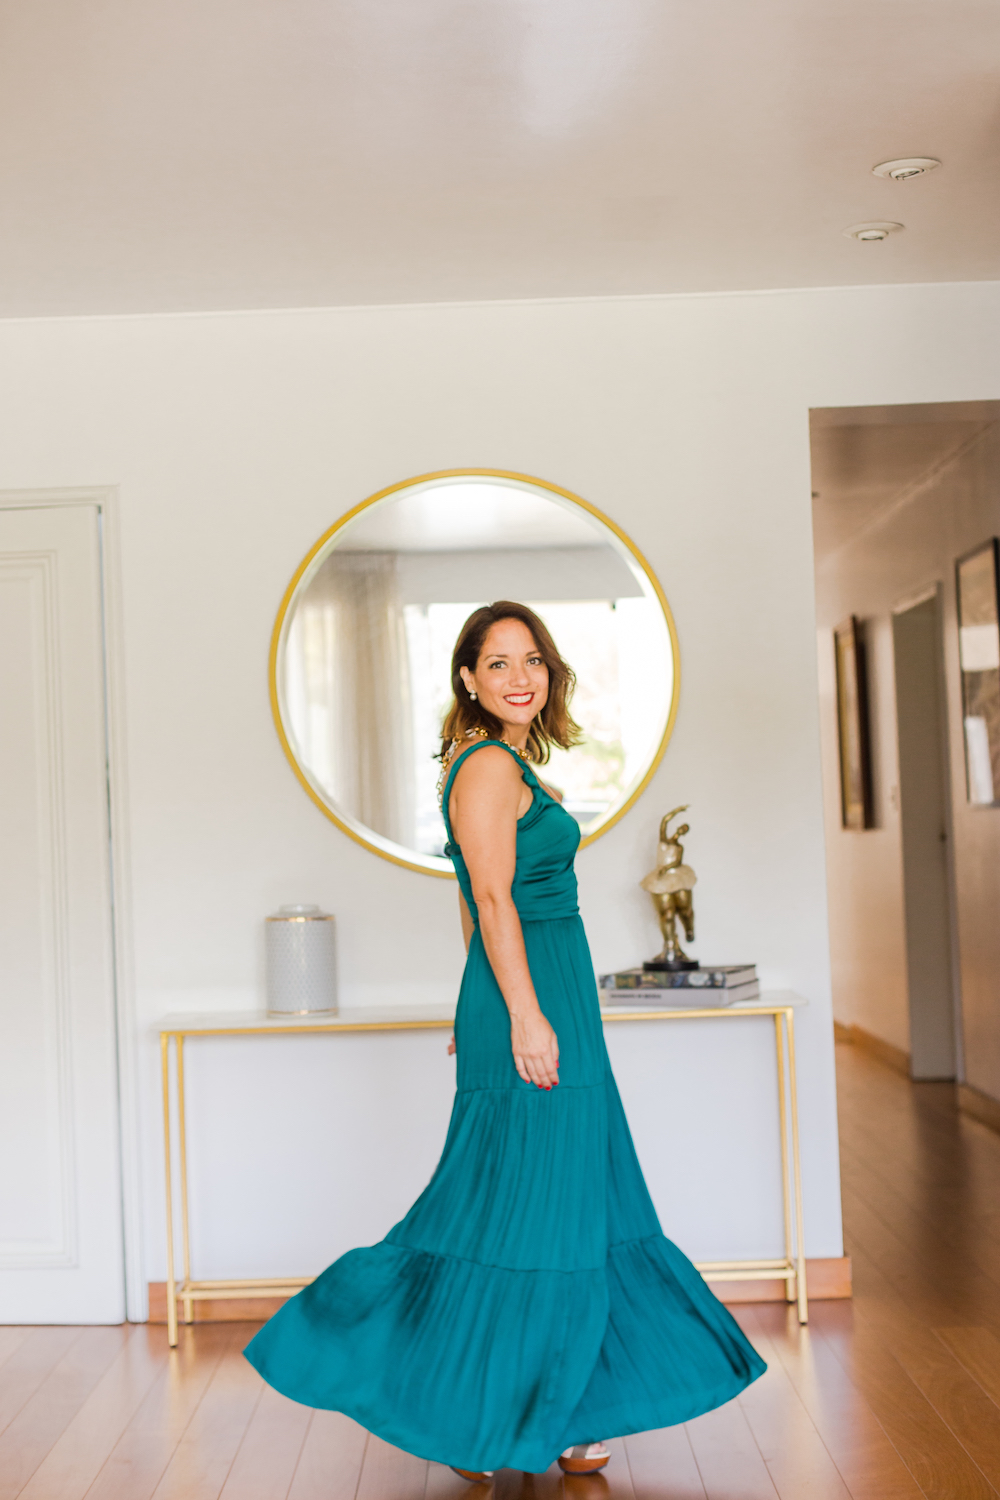 Banana Republic Emerald Green Maxi Dress - La Vida de Serendipity